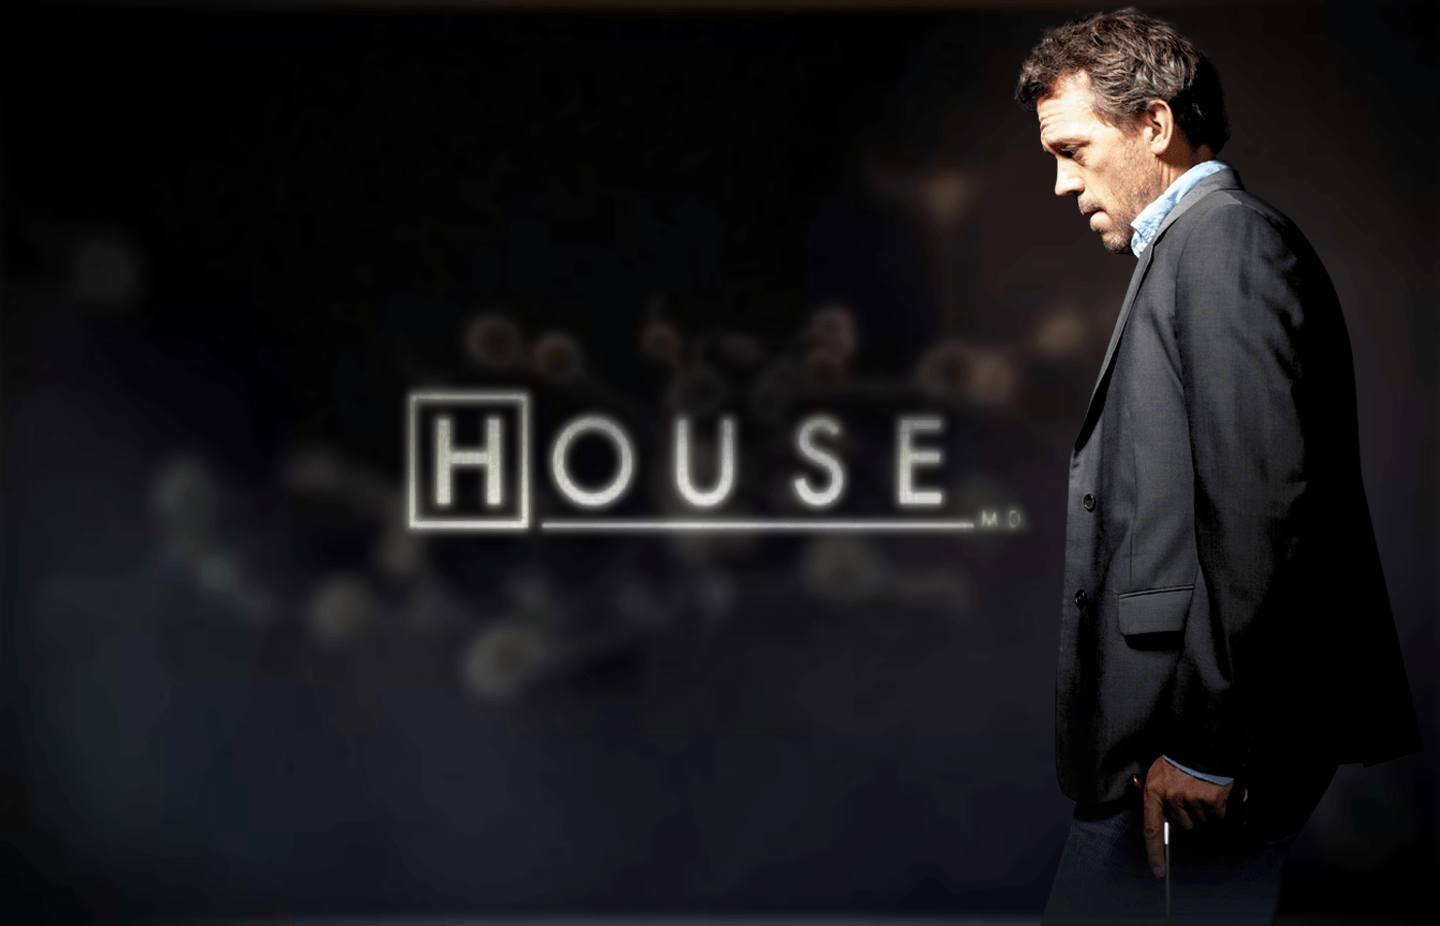 house md wallpapers wallpaper cave. Black Bedroom Furniture Sets. Home Design Ideas